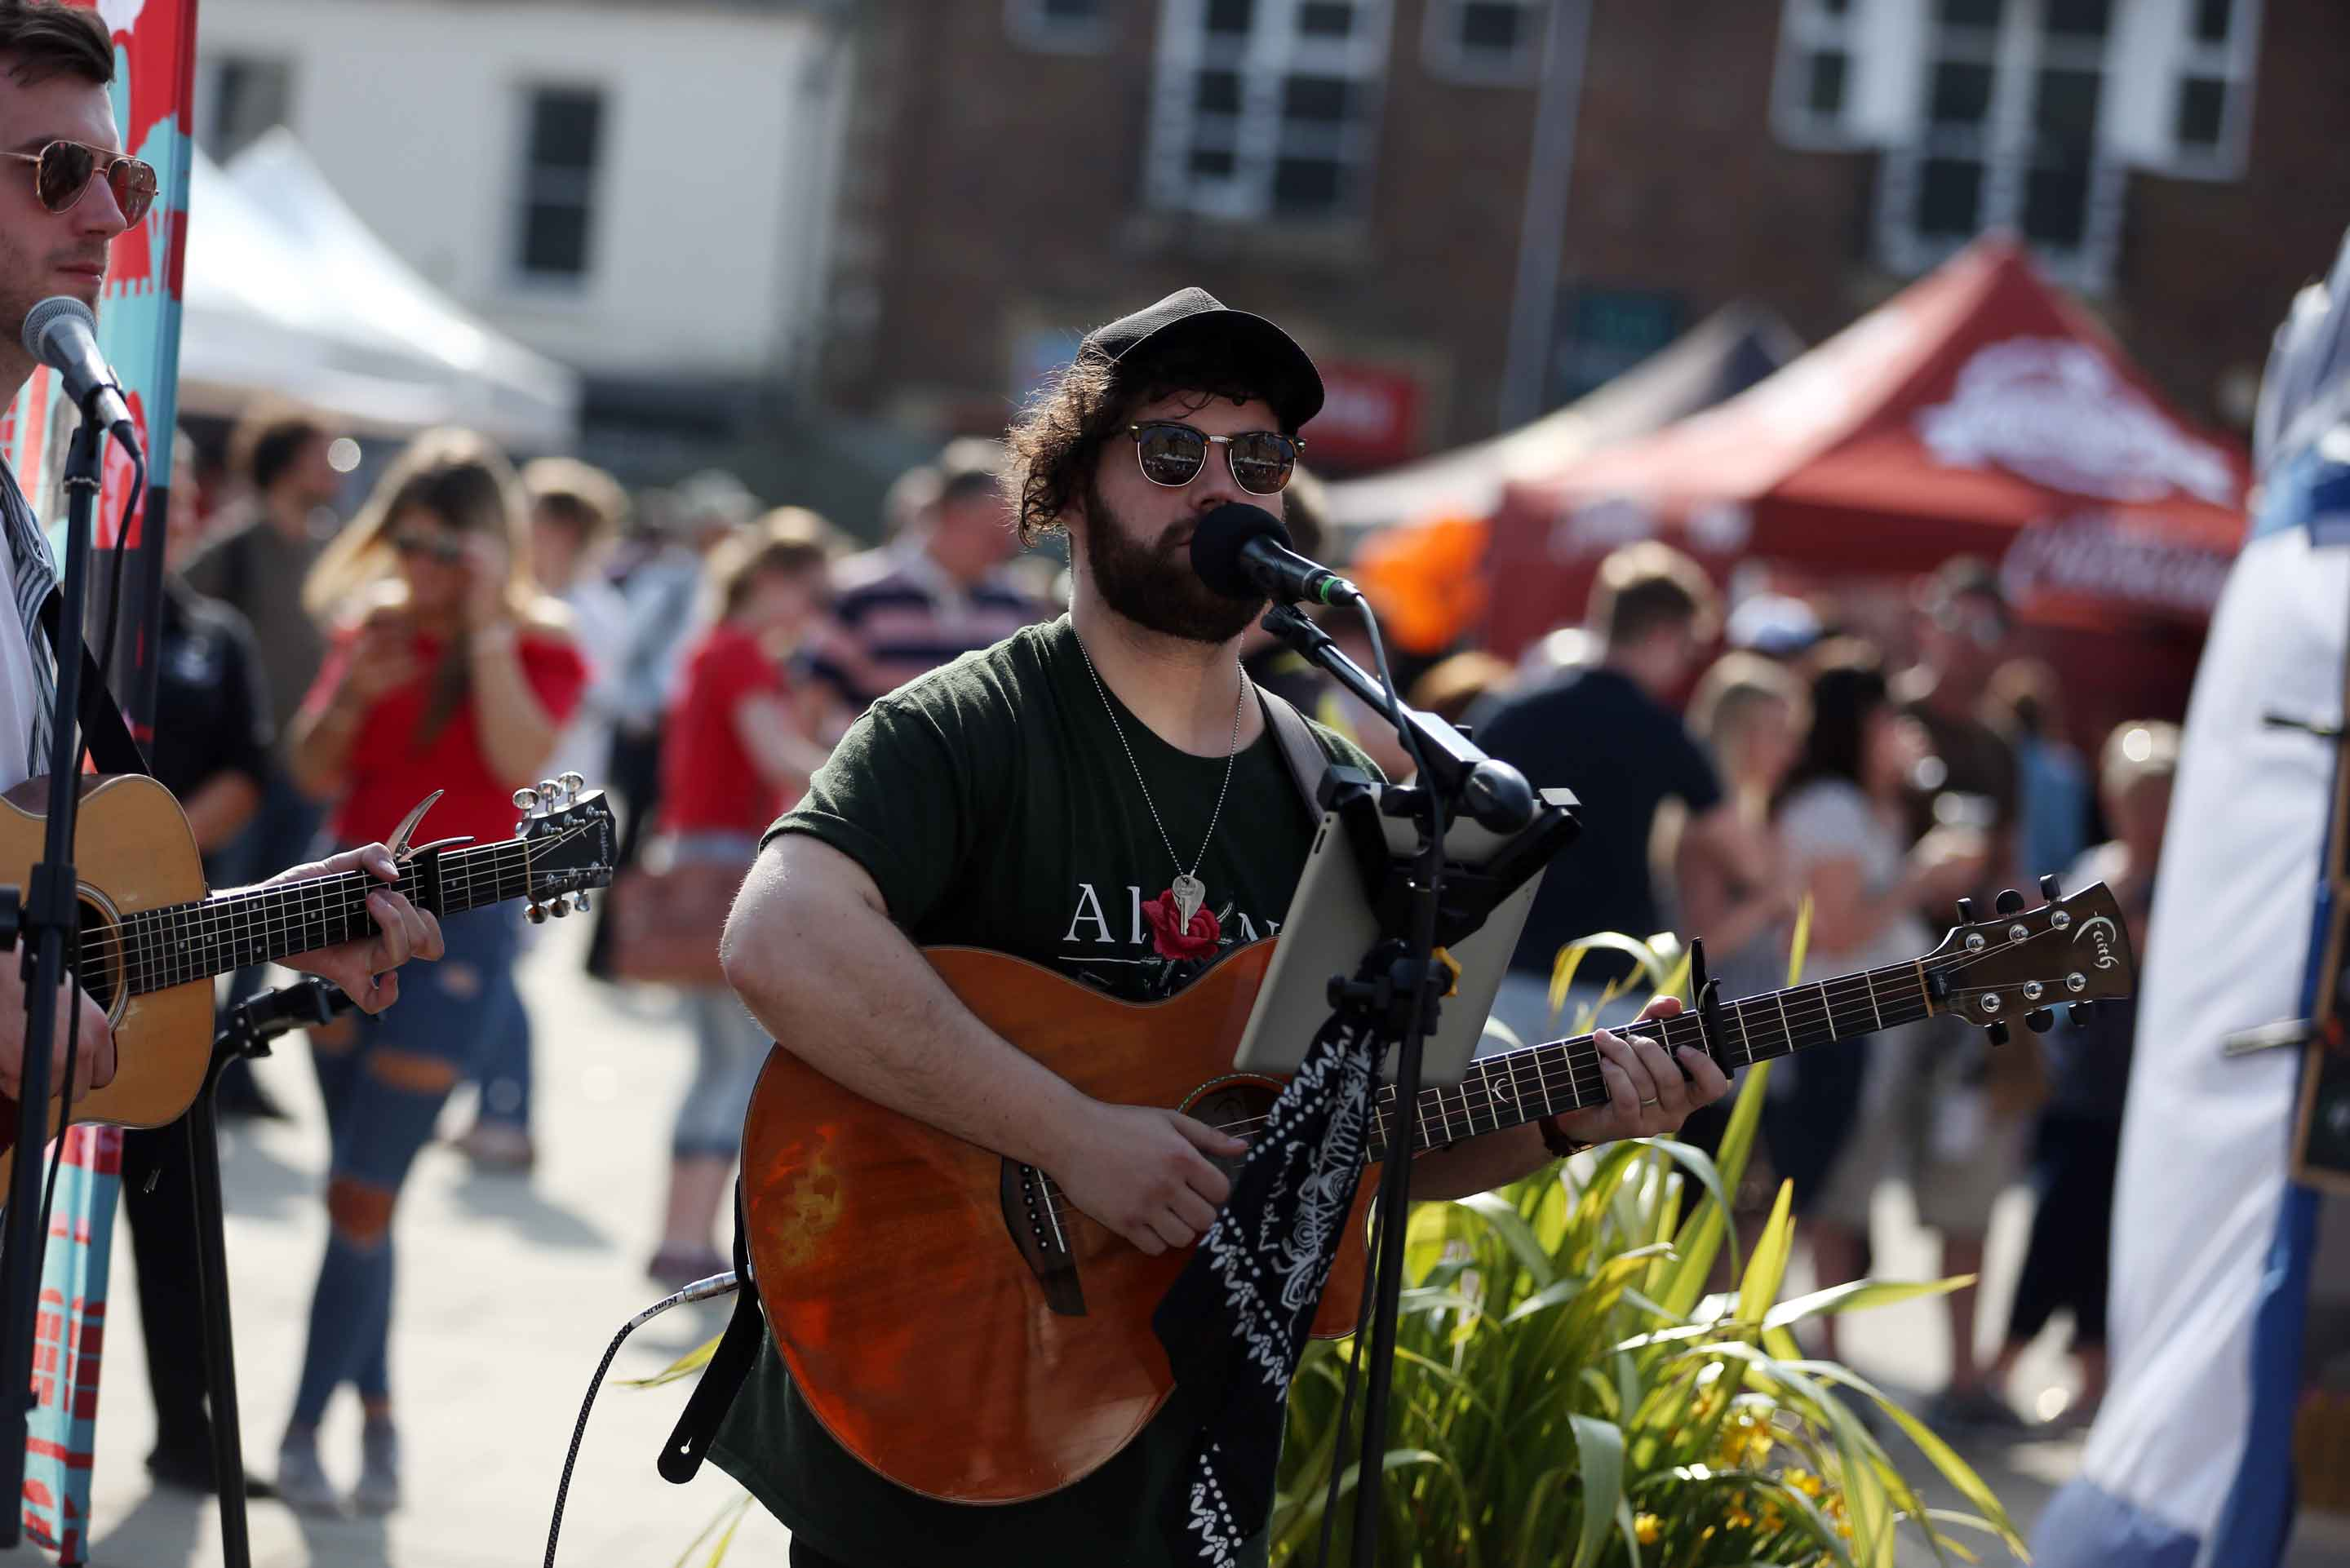 Bishop Auckland Food Festival | Live Music Daily